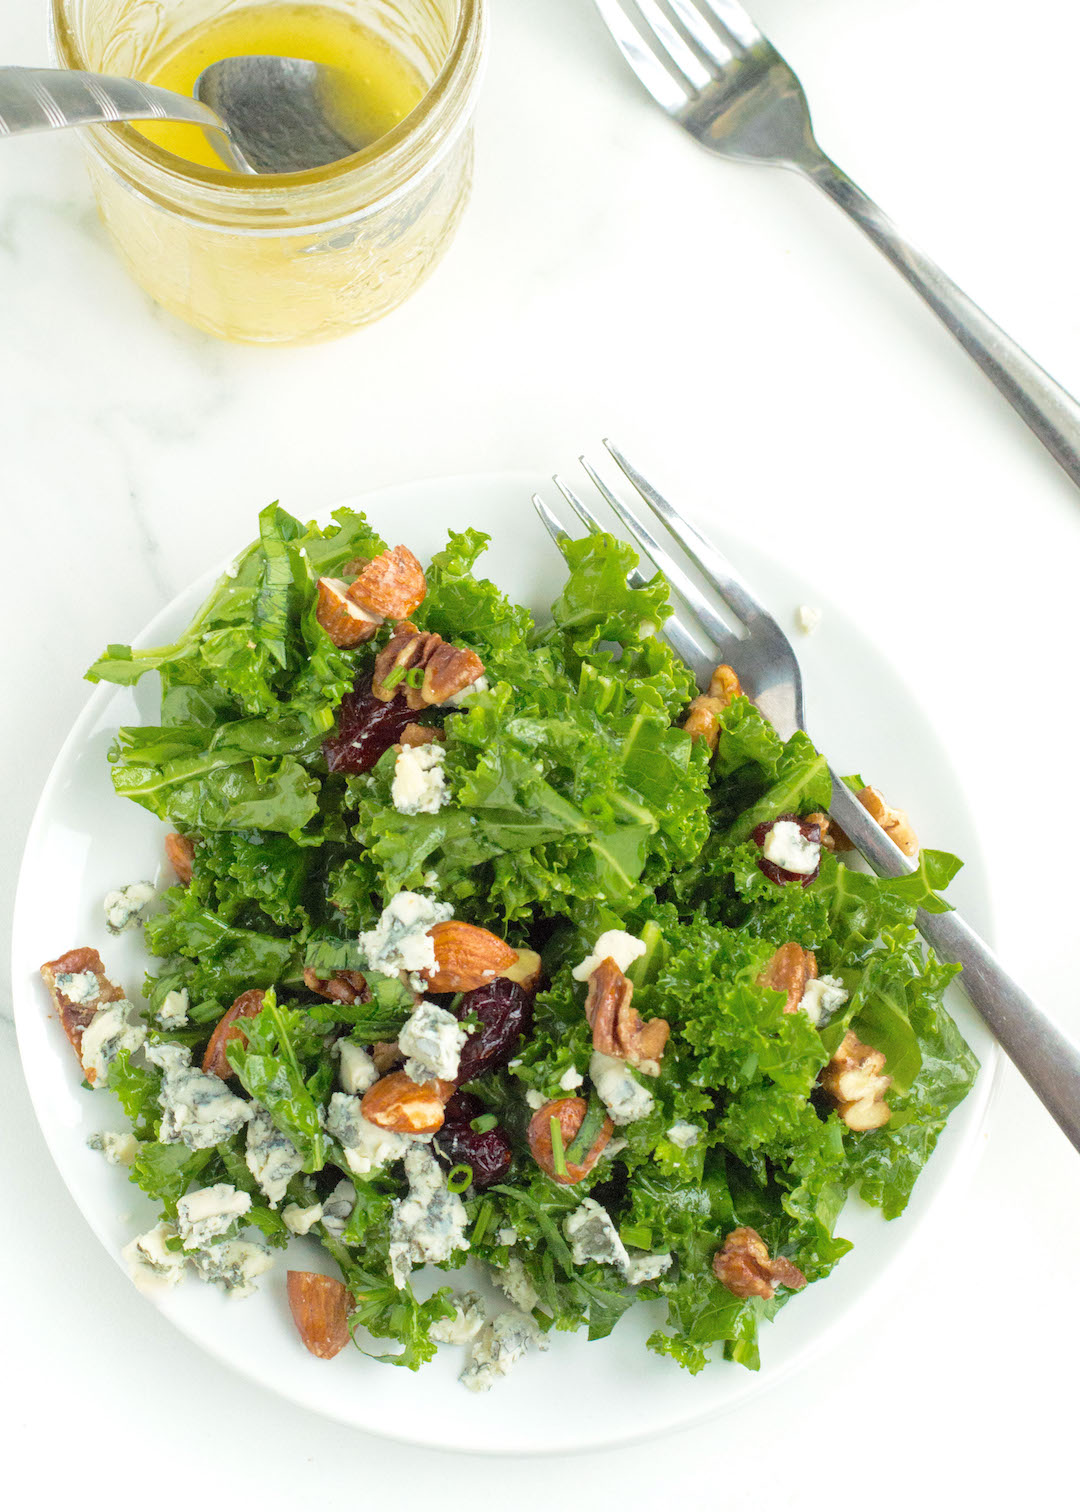 Lemony Kale Salad with Cranberries and Gorgonzola   A simple and healthy recipe for a lemony kale salad with dried cranberries and gorgonzola and candied nuts. This easy to make salad is gluten free and vegetarian-friendly and the perfect side dish for any dinner or party.